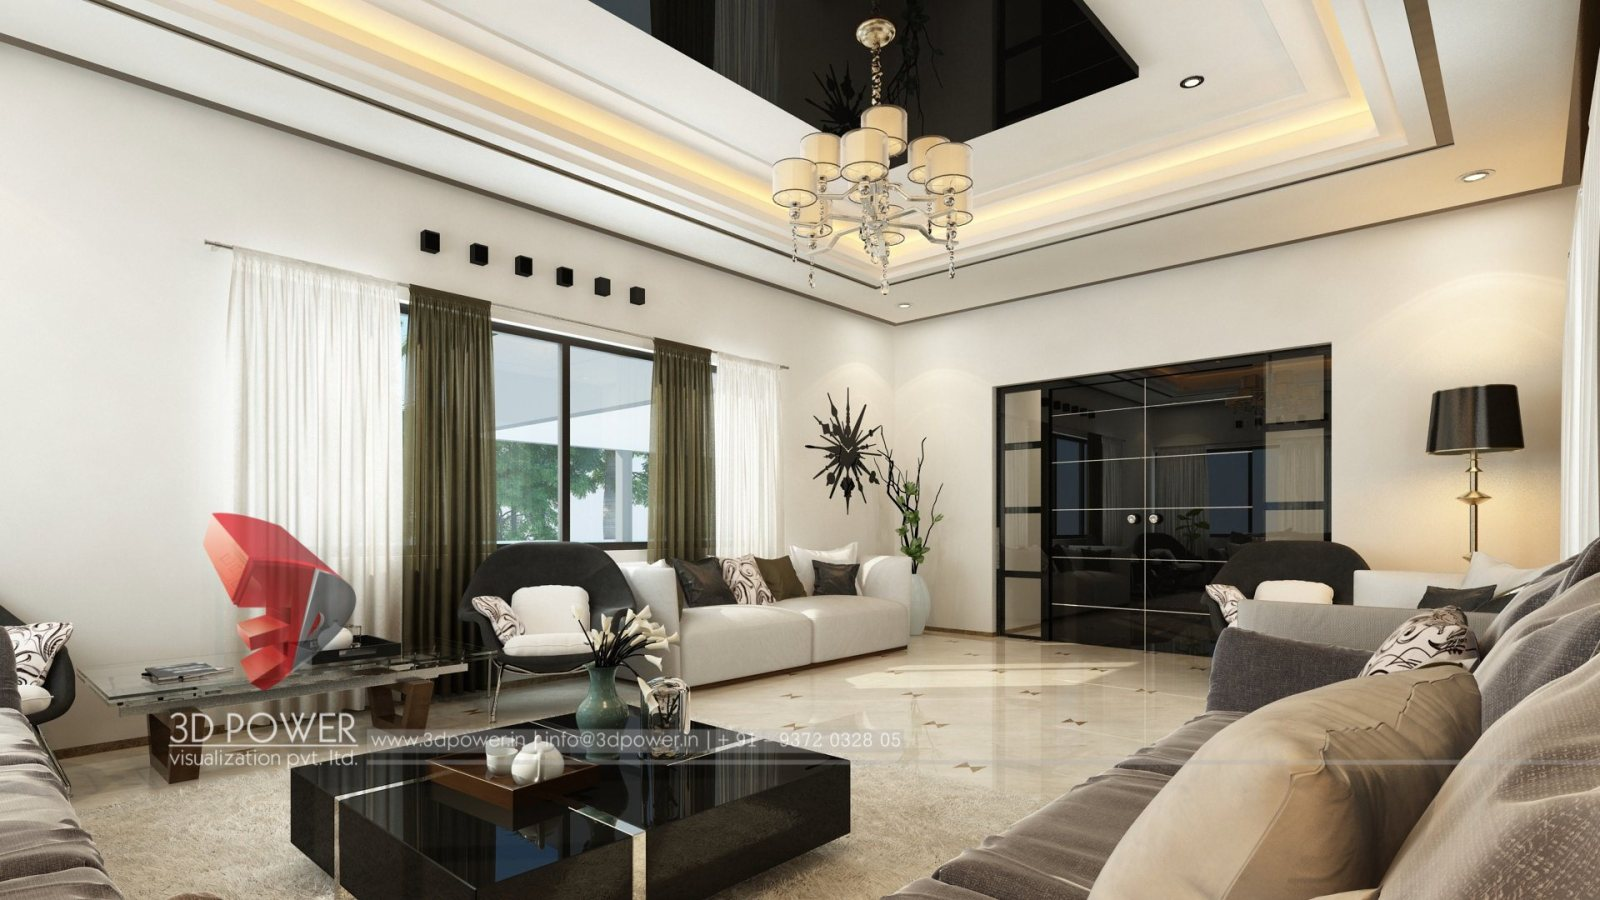 architectural-3d-modeling-services-living-room1